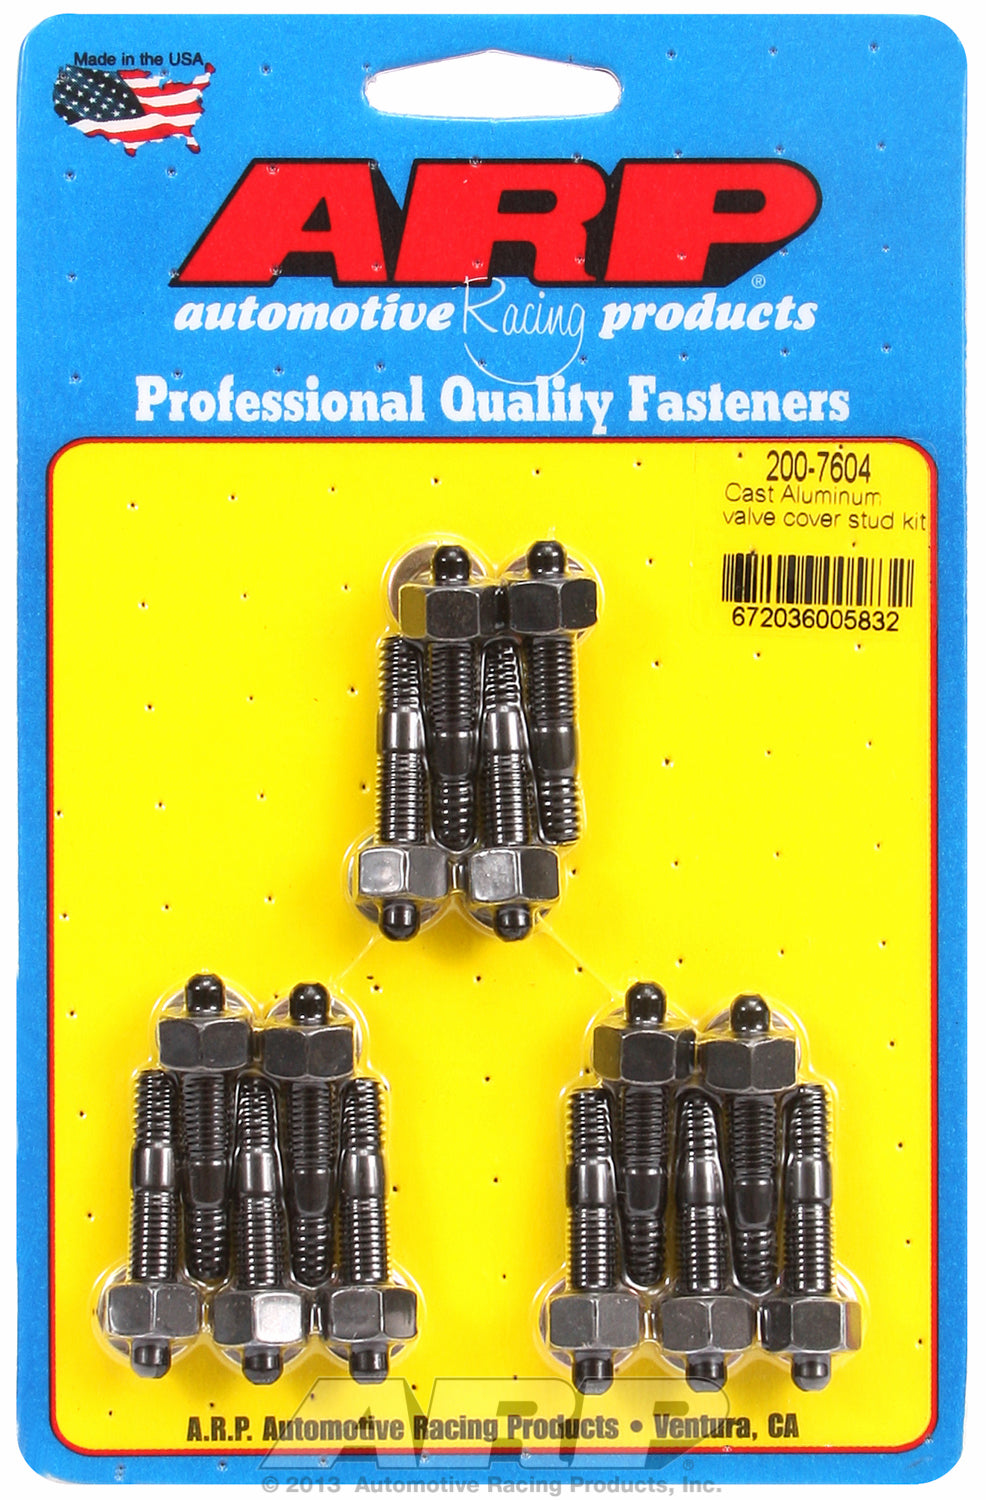 Valve Cover Stud Kit for Cast Aluminum Covers Stud kit Black Oxide - Hex Head